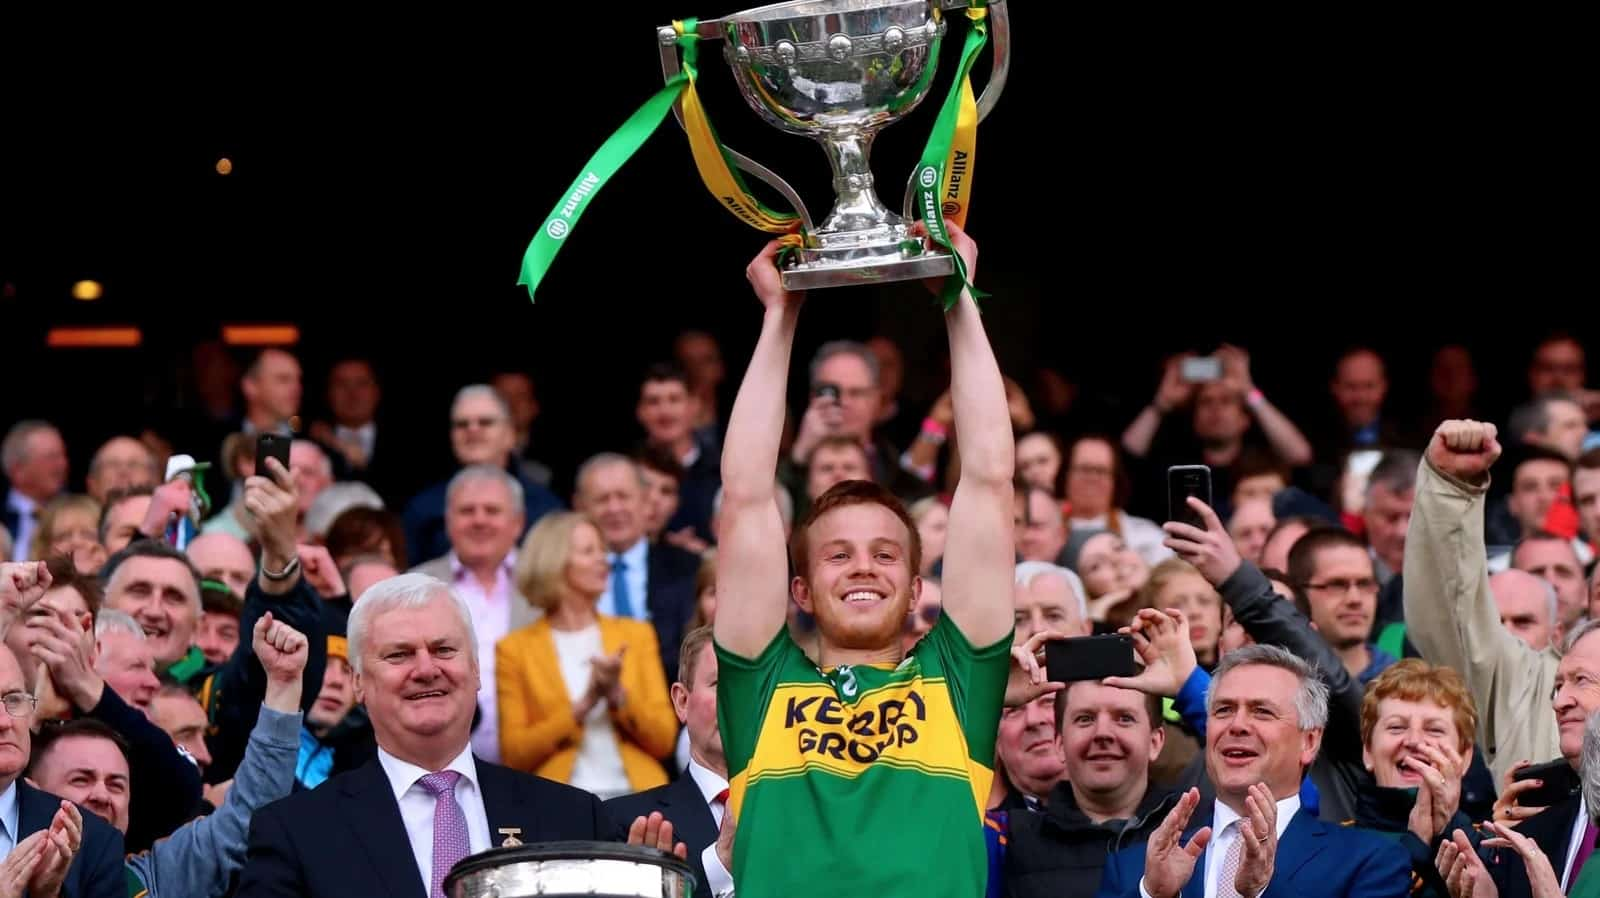 Fionn Fitzgerald to Captain Kerry in 2018